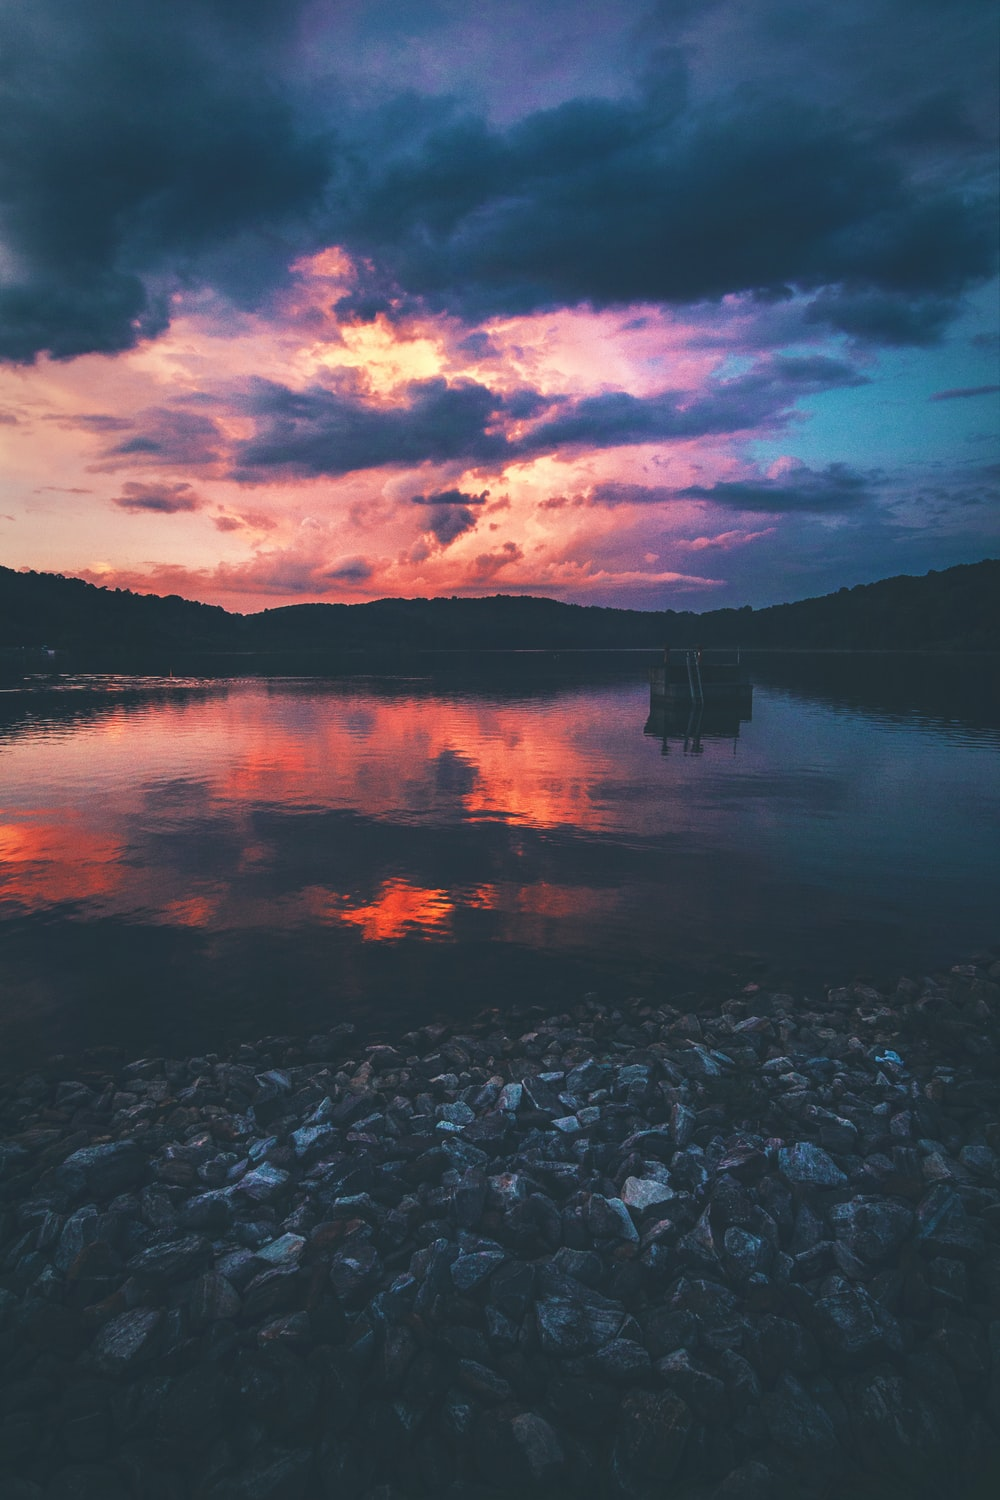 lake under cloudy sky